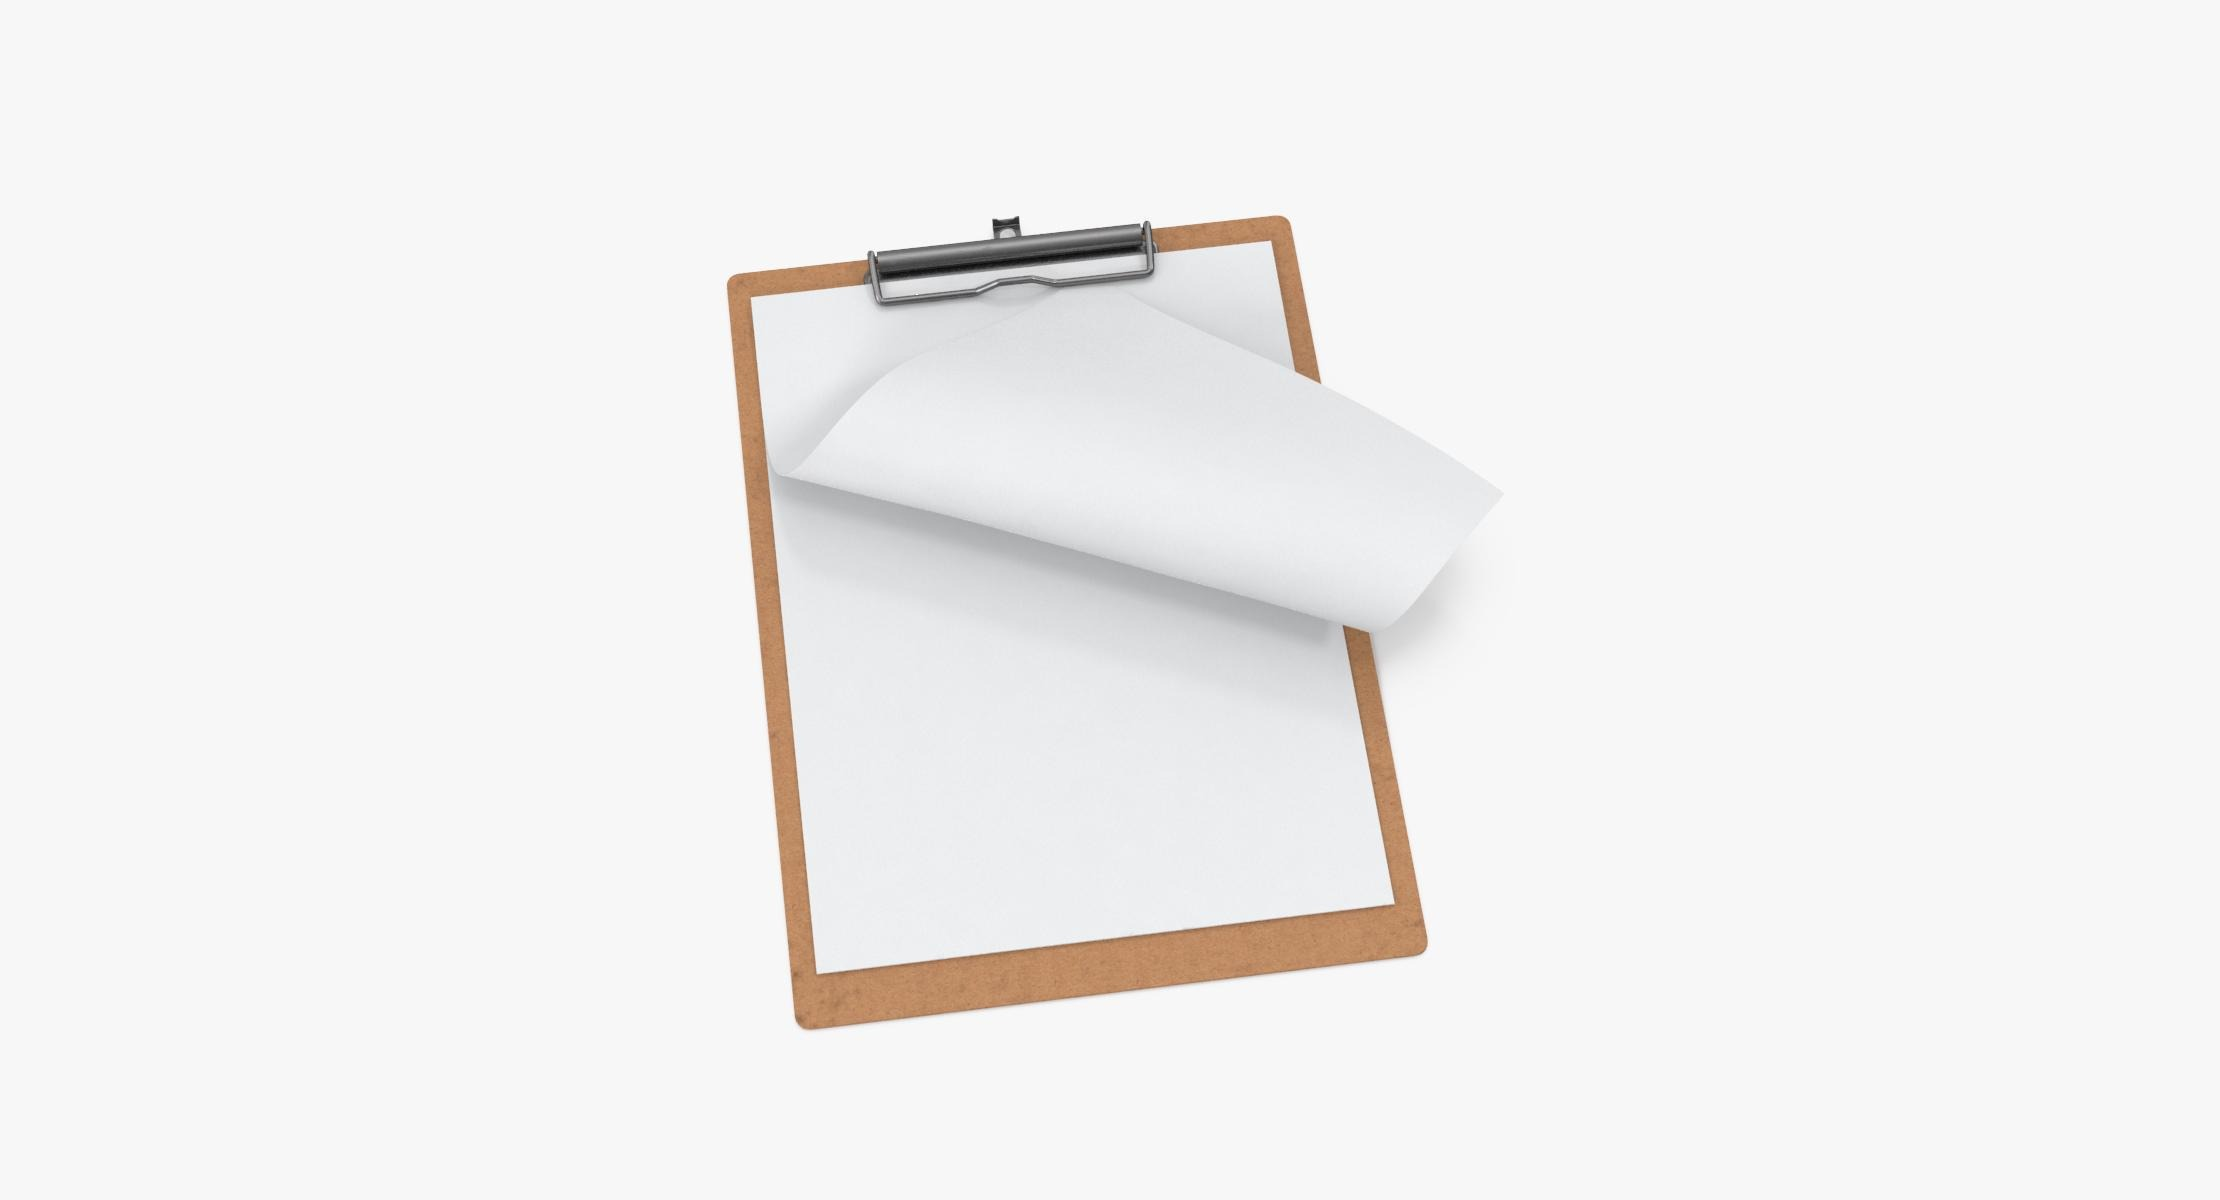 Paper Sheets in Clipboard 01 - reel 1